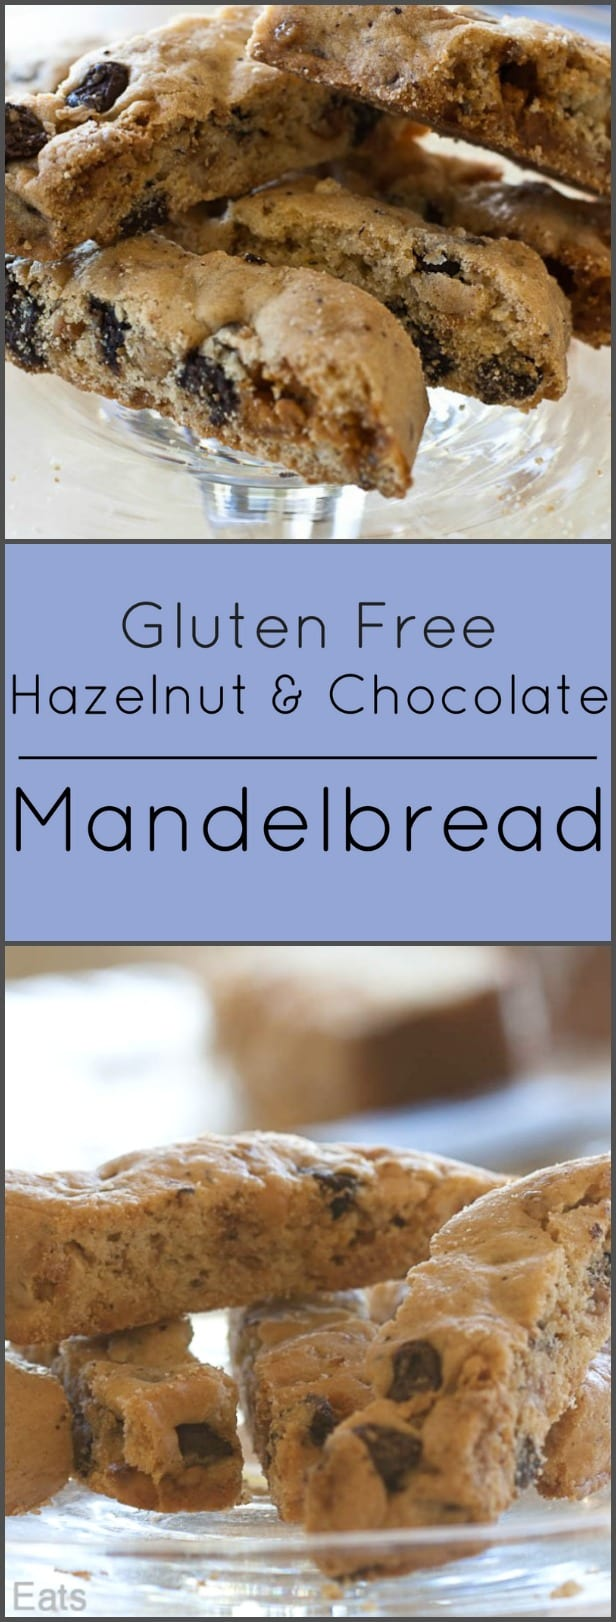 Gluten Free Mandelbread is filled with hazelnuts, white and dark chocolate chips and butterbrickle.